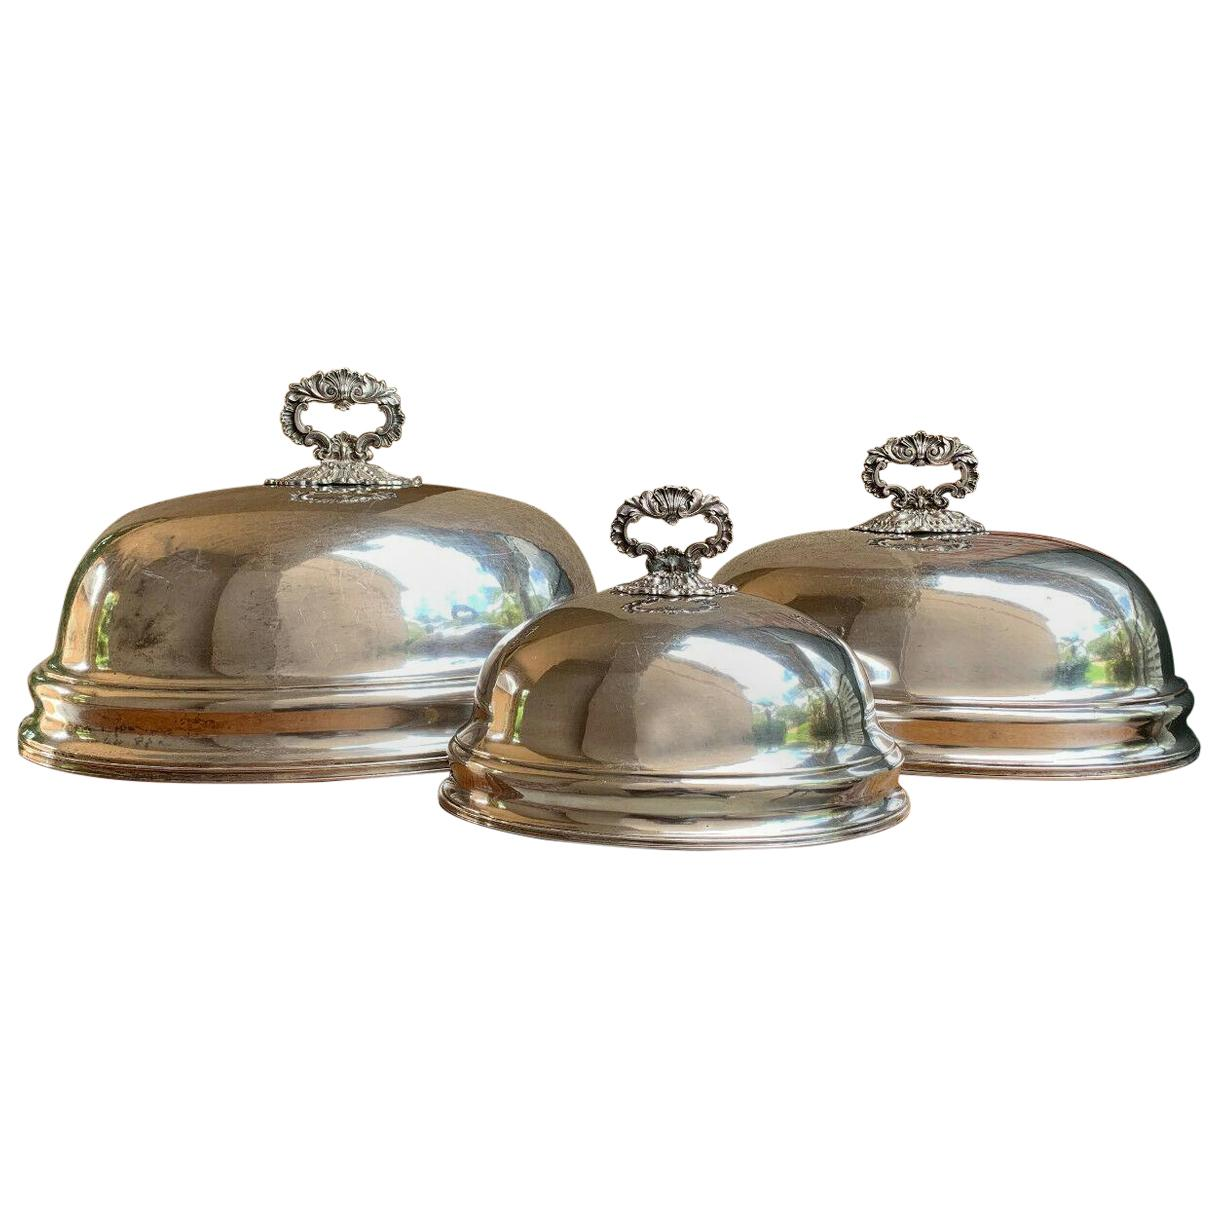 Set of 3 Antique English Silver Plate Turkey Meat Dome Food Cover Table Decor